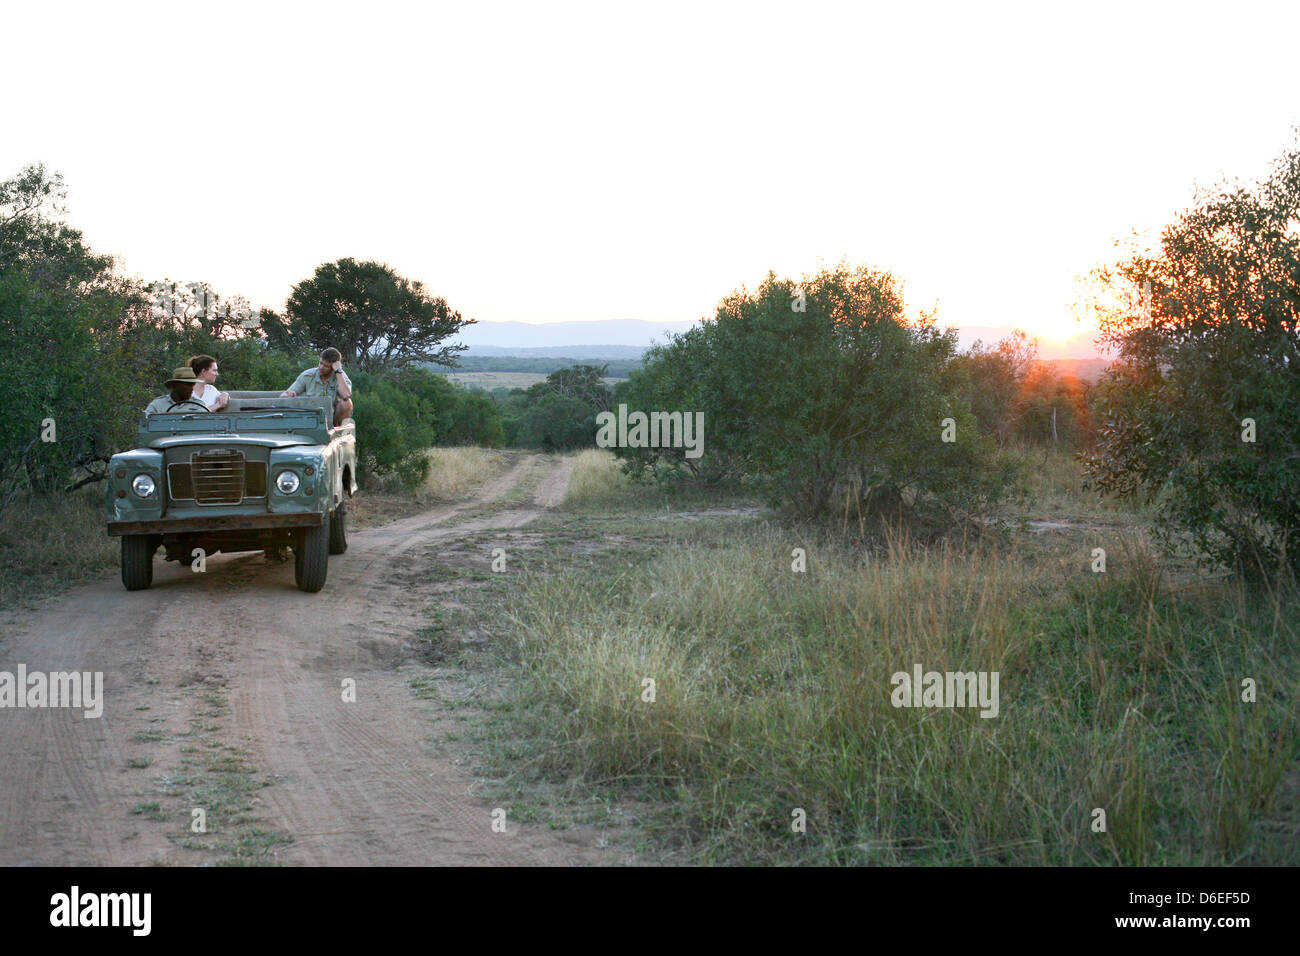 Jeep driving down a trail at sunset in a Serengetti landscape - Stock Image